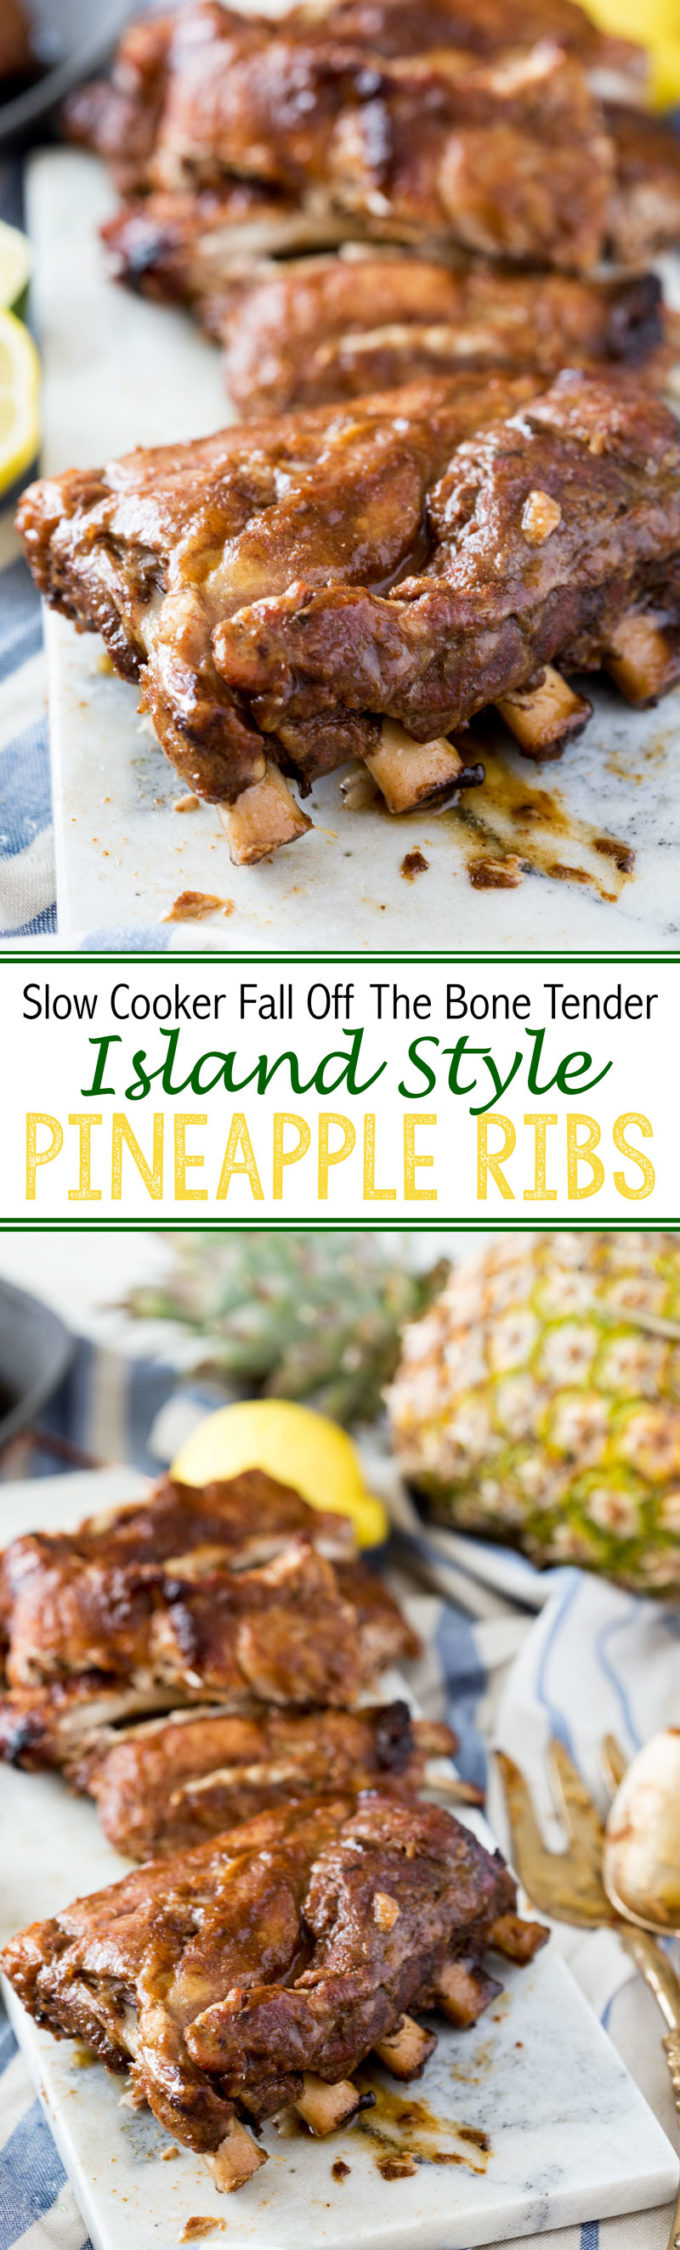 Fall off the bone tender island style pineapple BBQ pork ribs cooked in the slow cooker